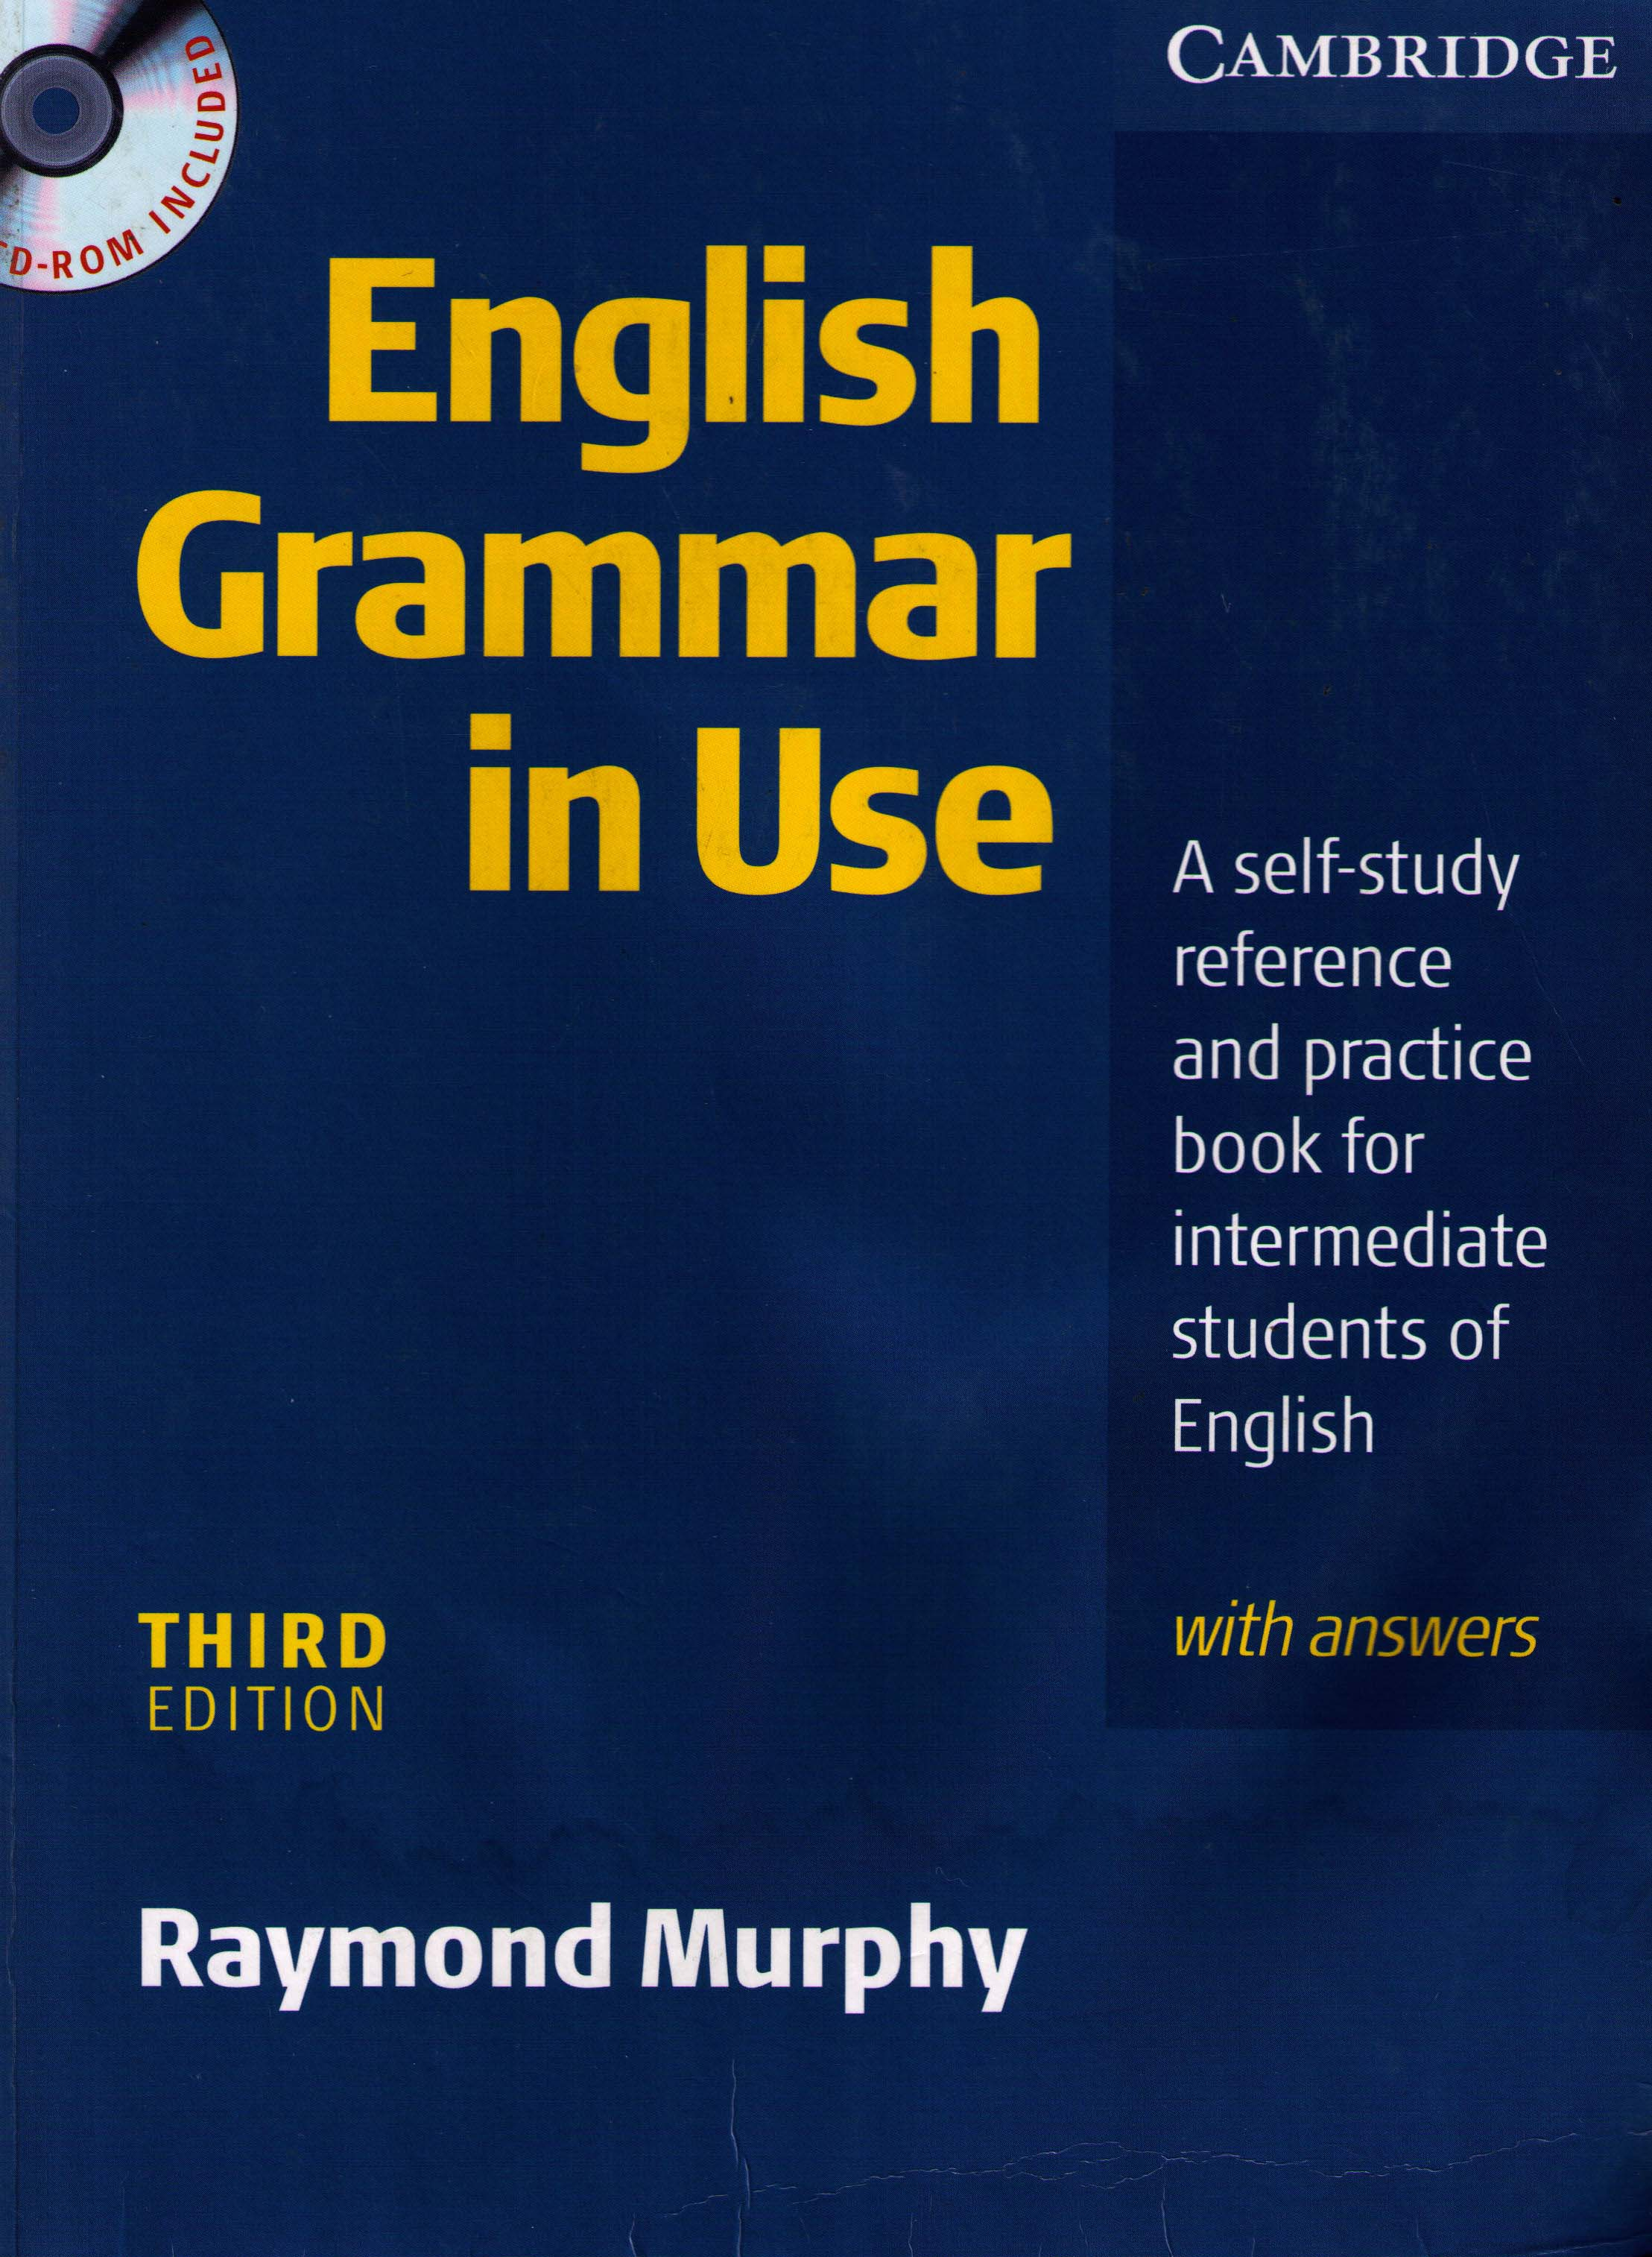 Top 5 grammar books for ielts 1 english grammar in use rrphy cambridge fandeluxe Choice Image